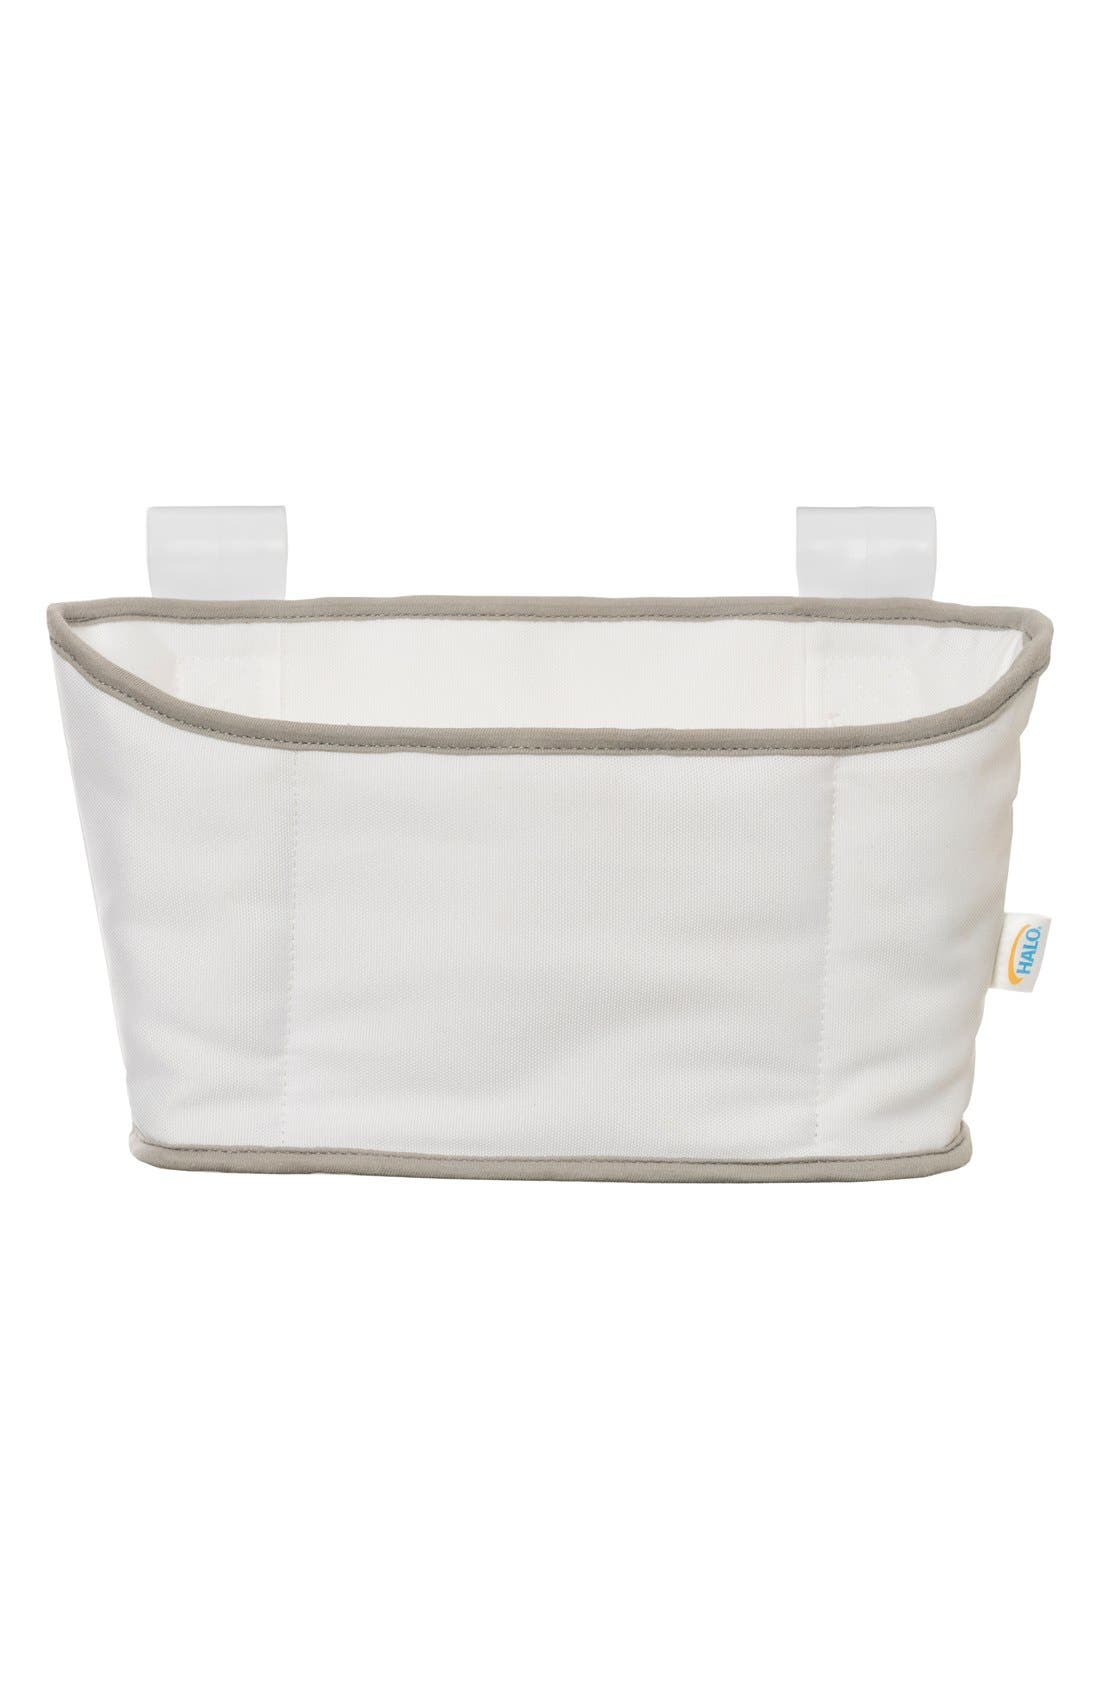 Bassinest<sup>™</sup> Storage Caddy,                             Main thumbnail 1, color,                             WHITE